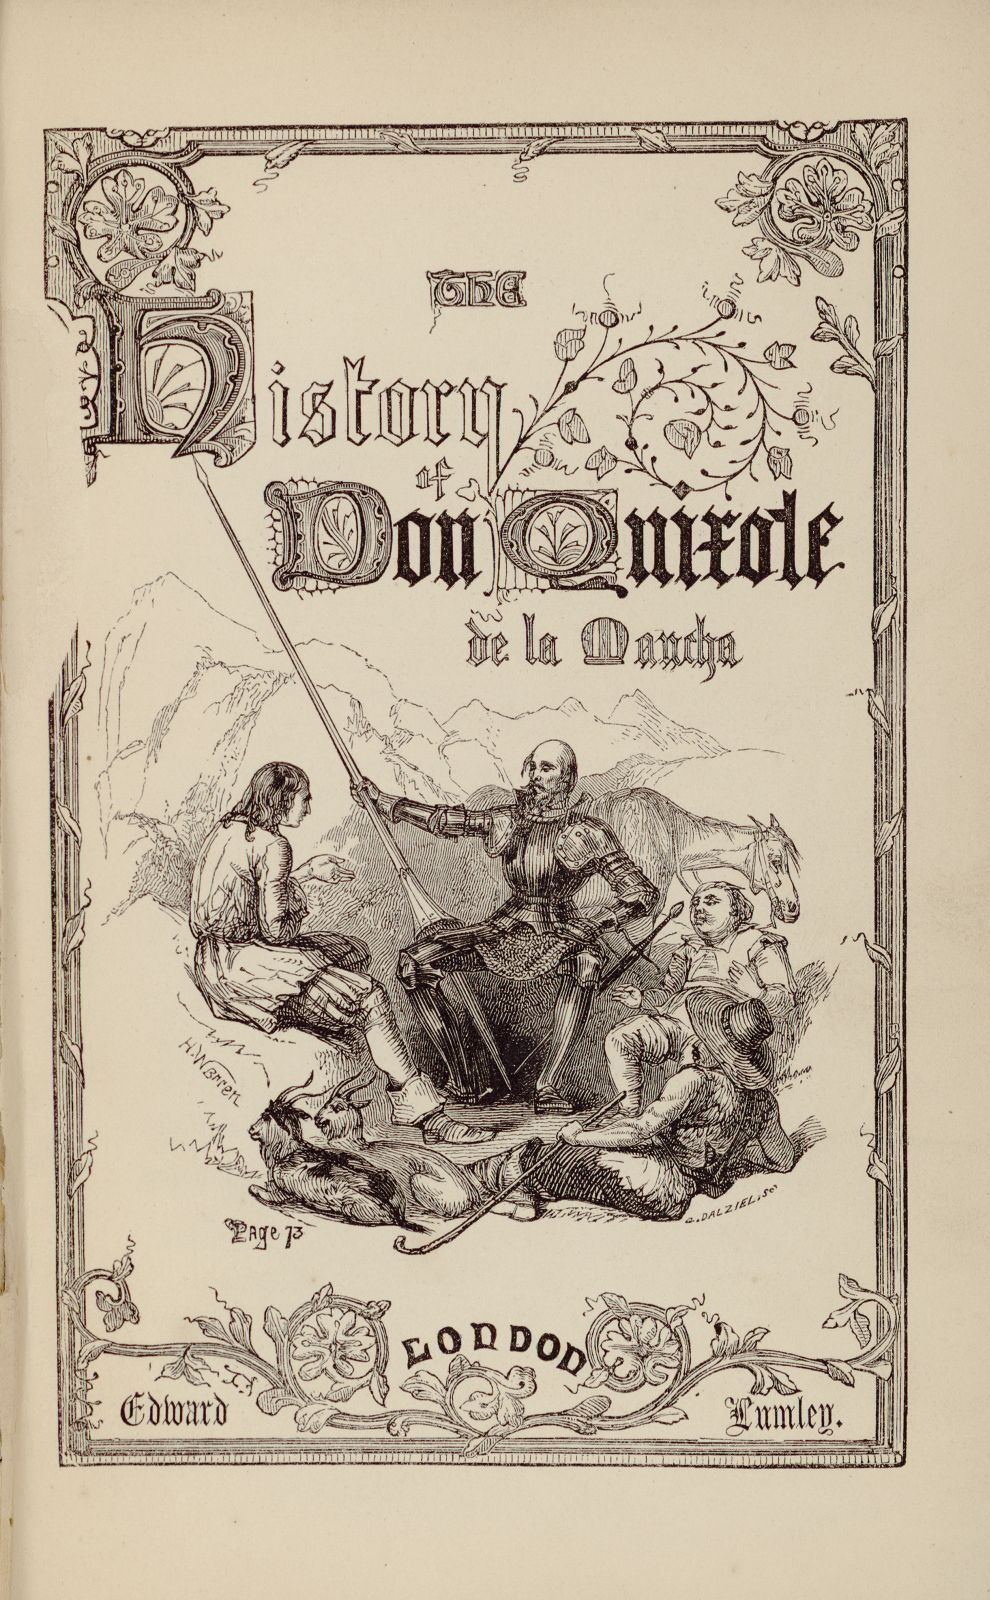 reid s reader a blog of book reviews and comment something old for quite a long time i have contemplated writing something about don quixote on this blog